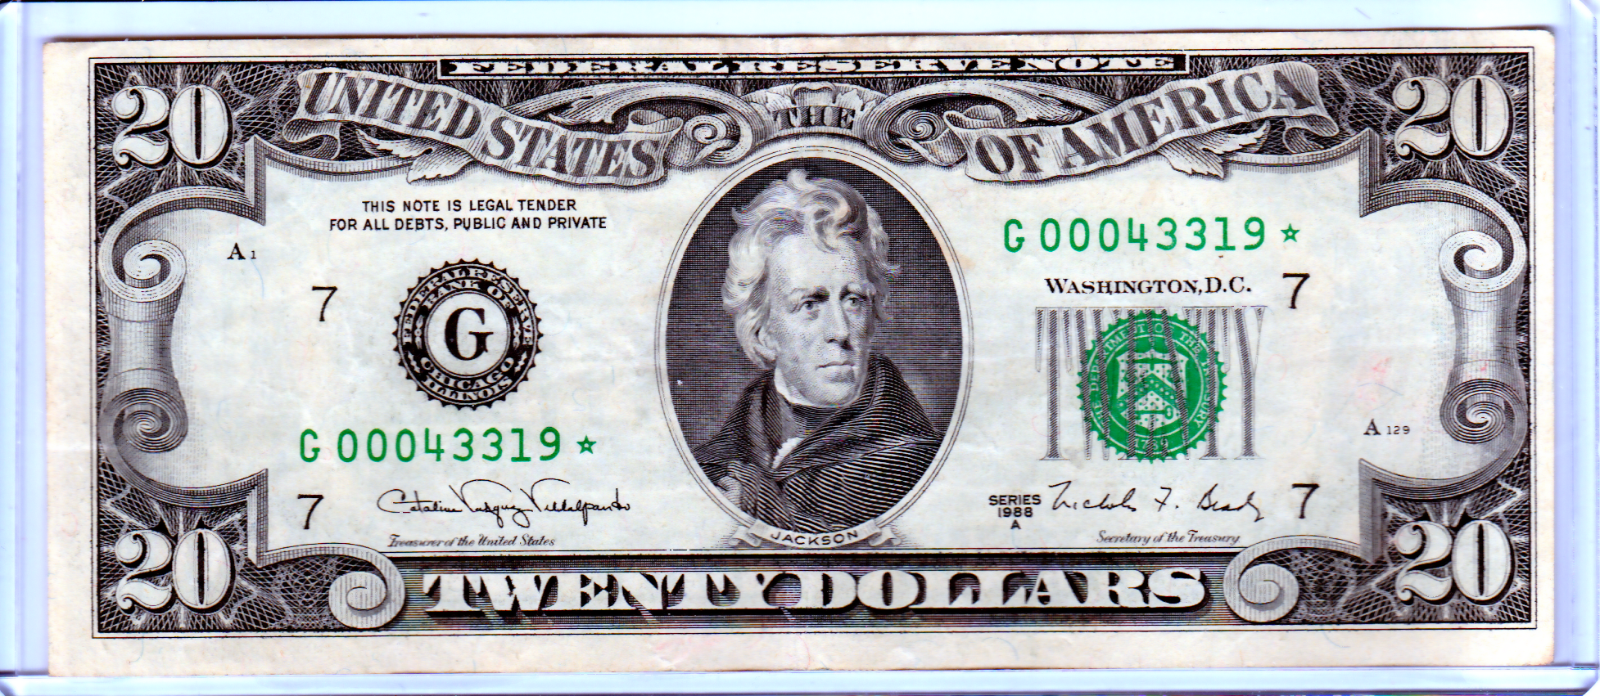 Very Rare 1988 20 Federal Reserve STAR NOTE Bill - VINTAGE OLD MONEY - 068  - $44.95